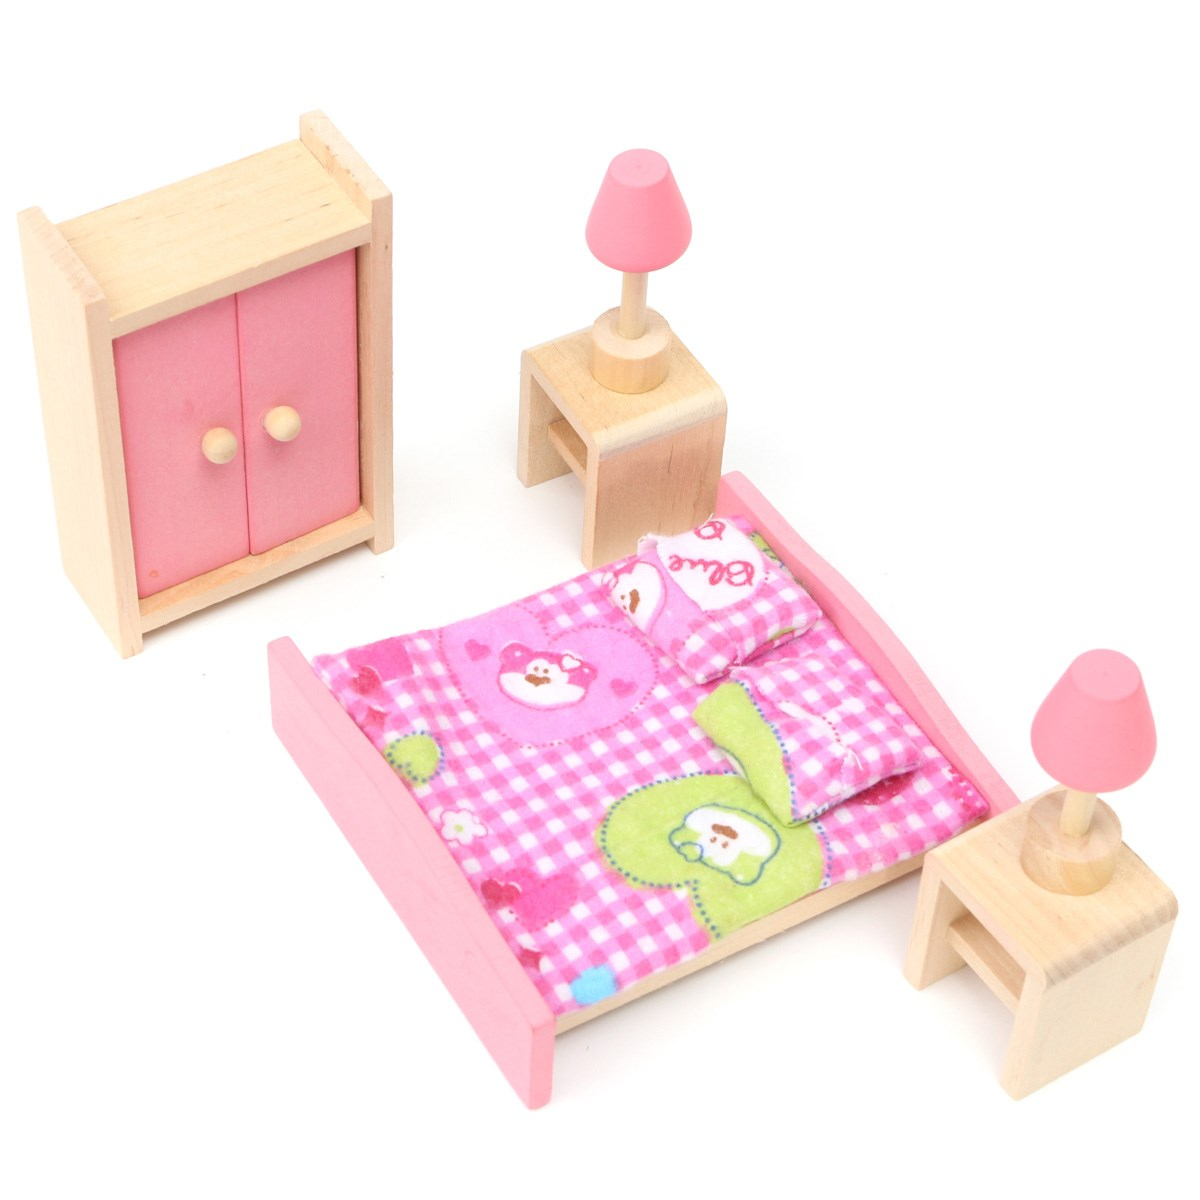 Wooden Play Toys : Wooden delicate dollhouse furniture toys miniature for